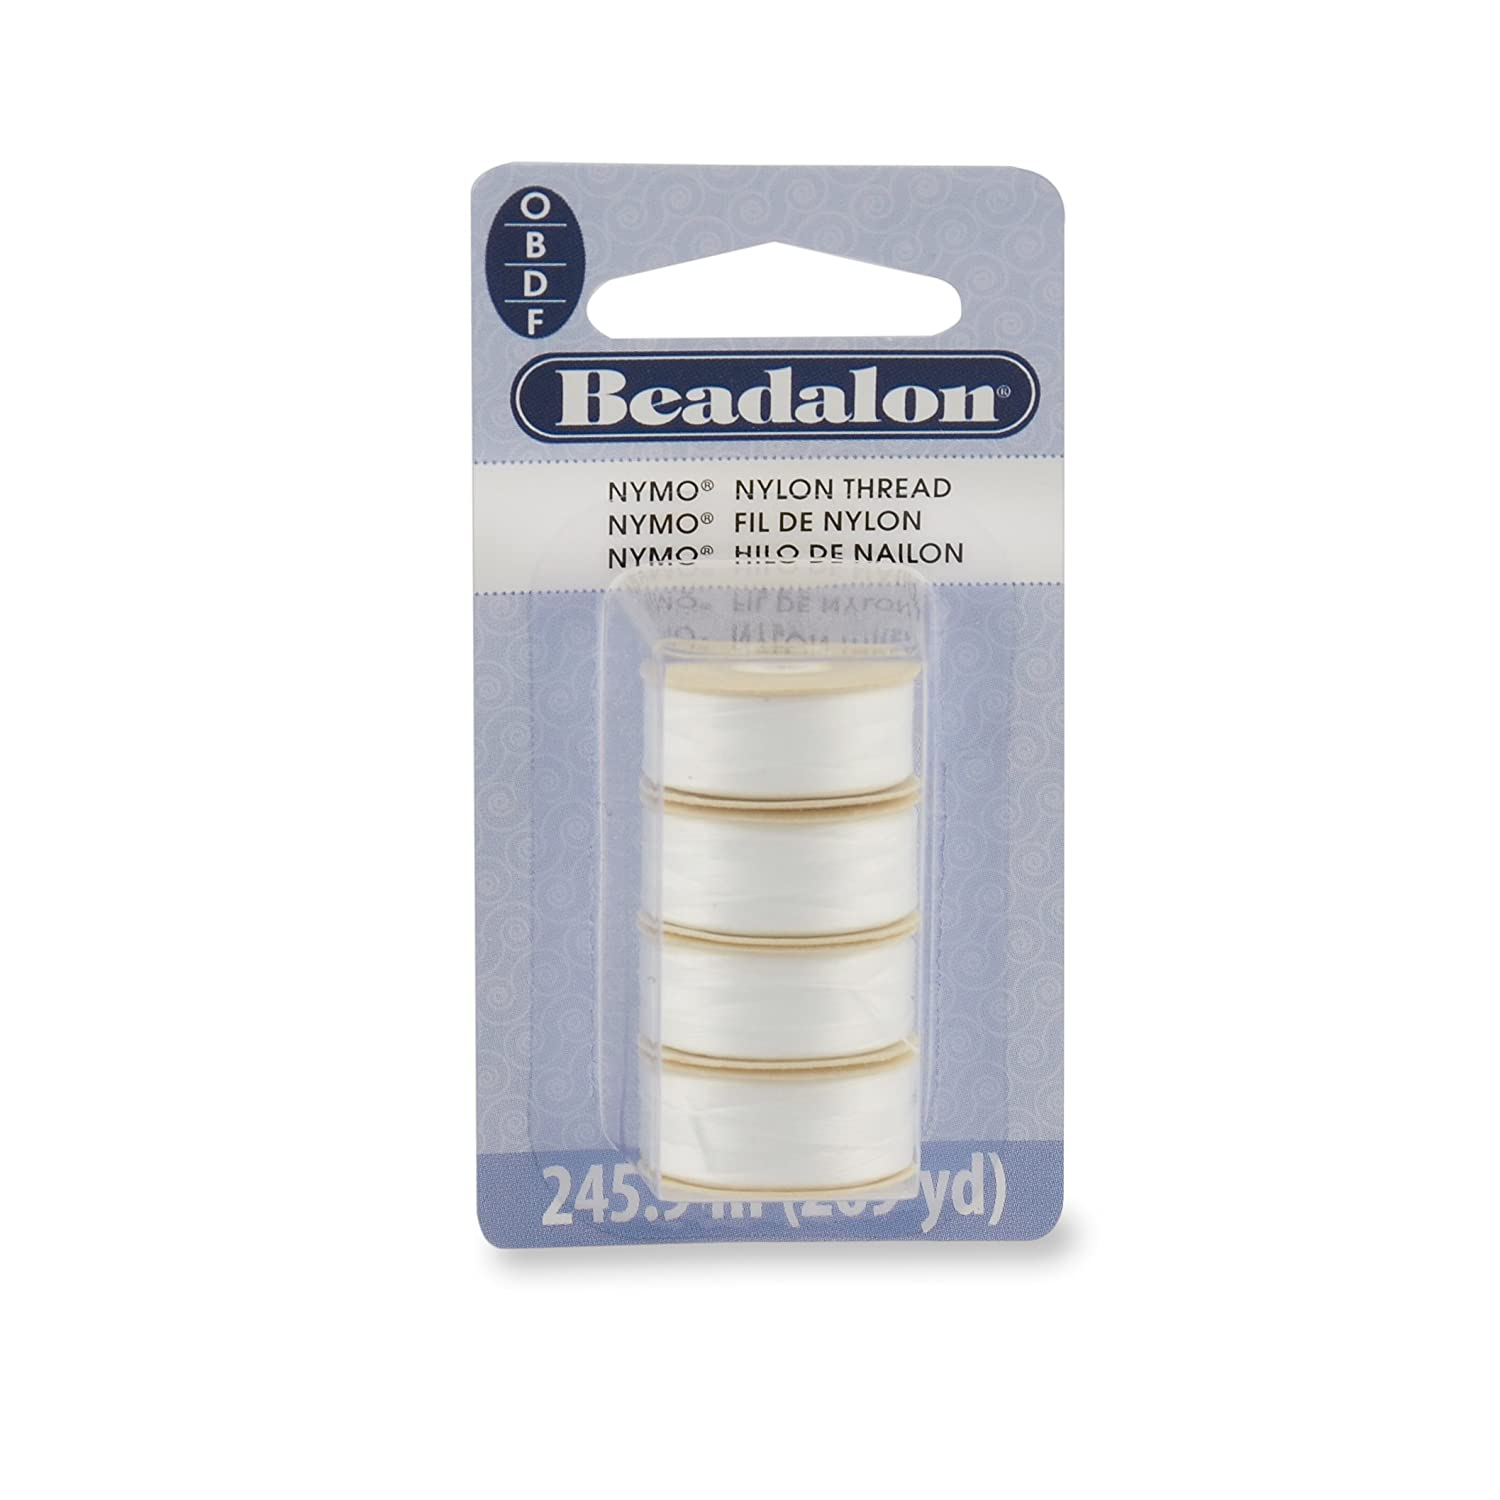 Nymo Thread, Sizes O,B,D,F All White Beadalon 124X-106